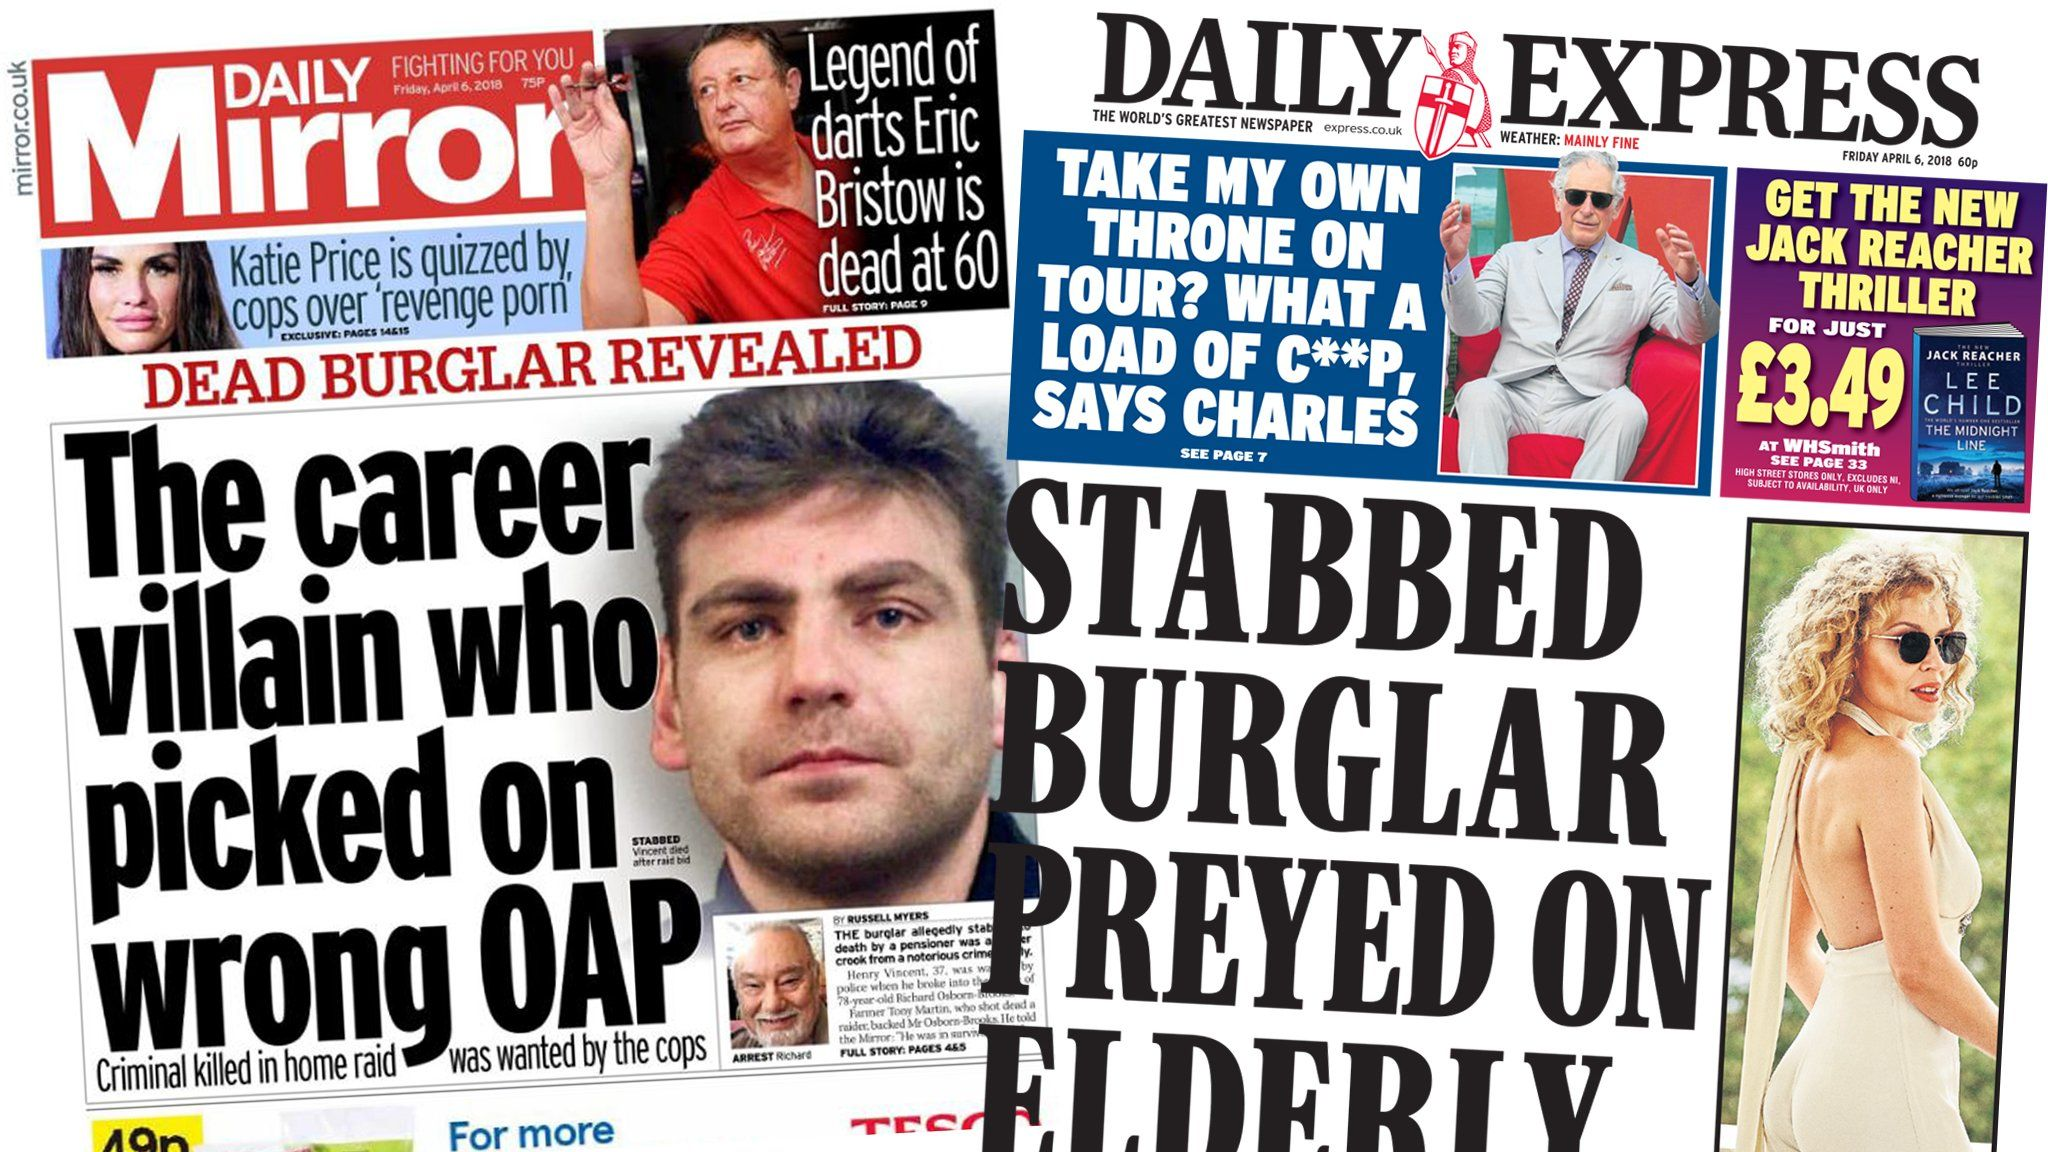 Mirror and Express front pages 6th April